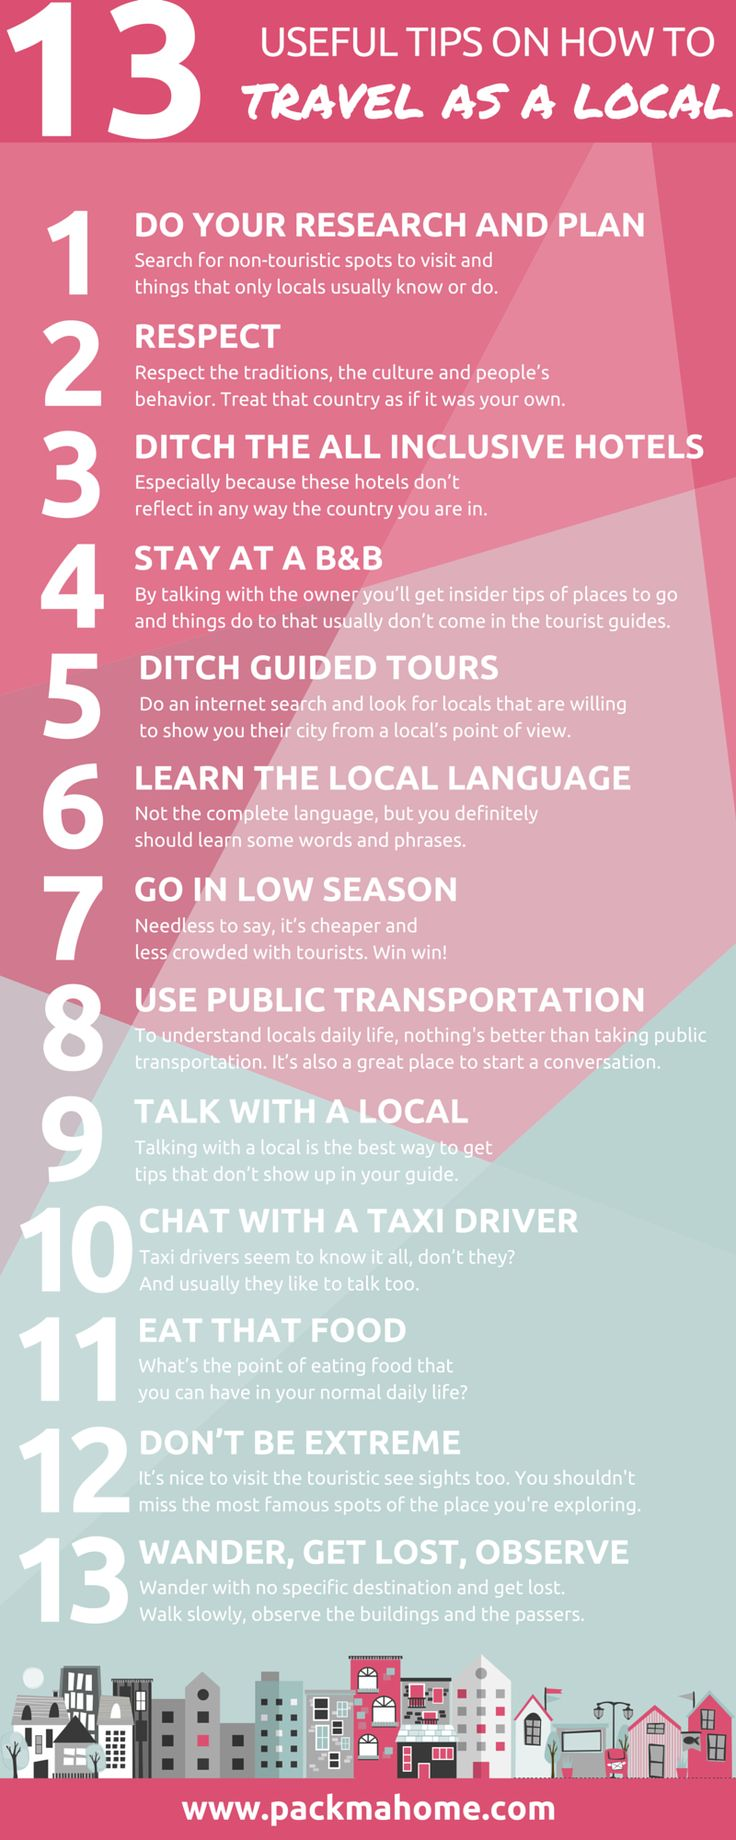 13 USEFUL TIPS ON HOW TO TRAVEL LIKE A LOCAL  http://packmahome.com/13-useful-tips-on-how-to-travel-like-a-local/